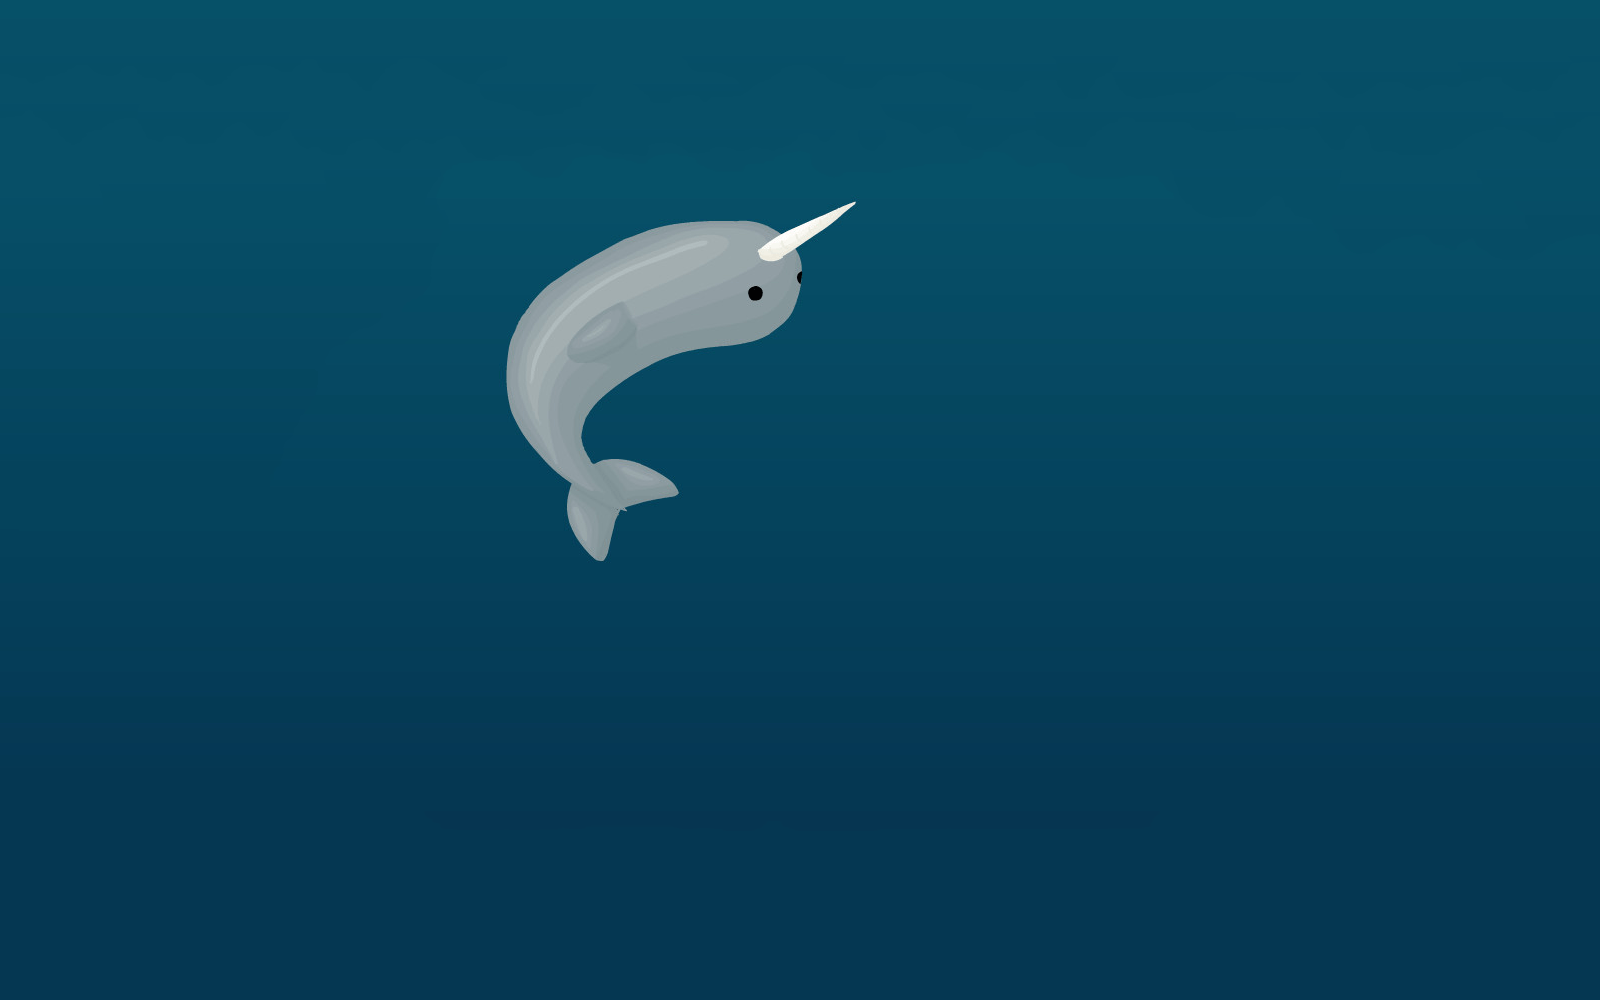 Narwhal Wallpaper Cute Cute Narwhal Wallpapers Wallpaper Cave